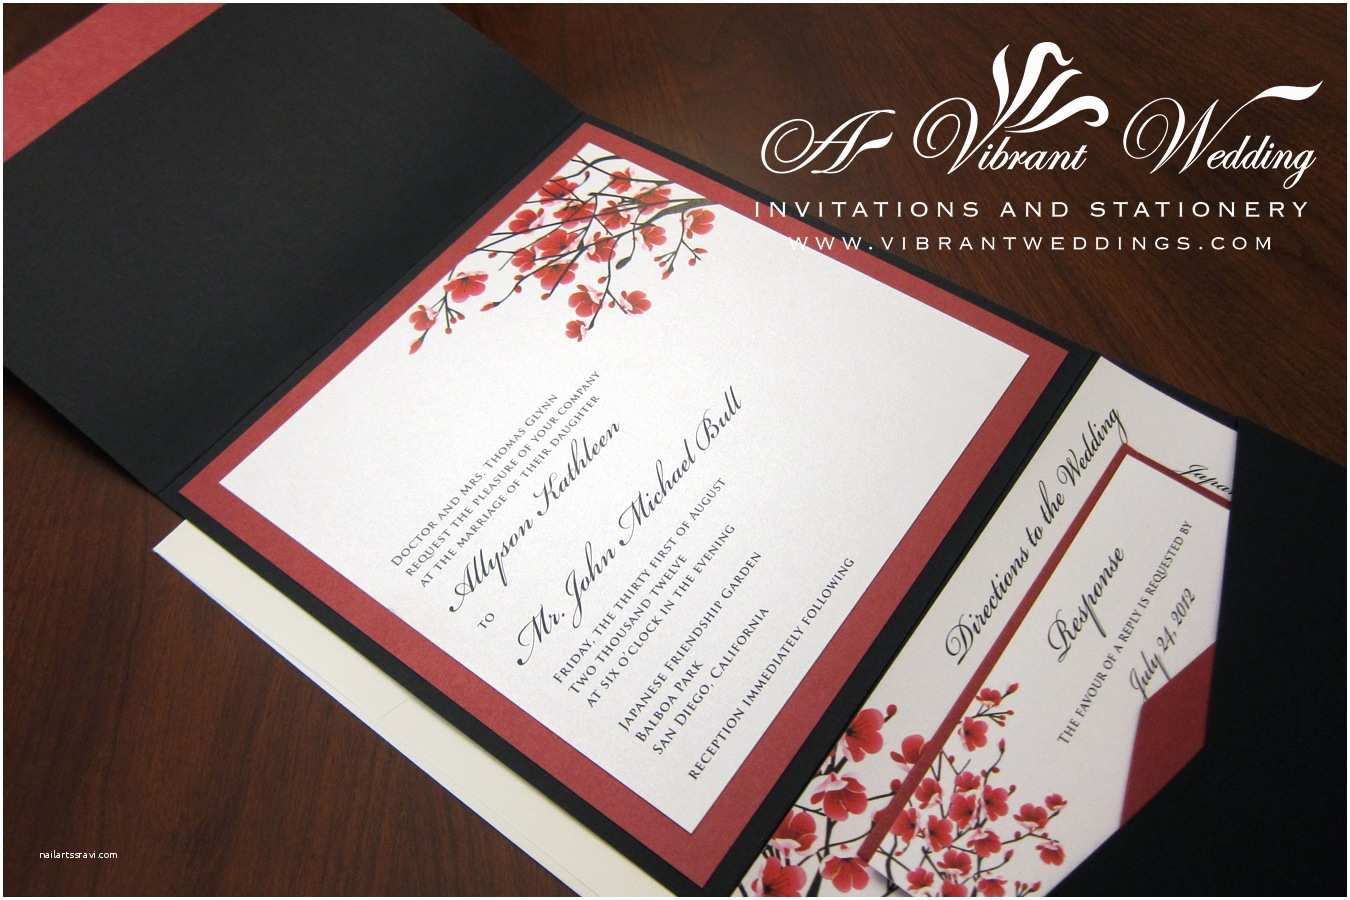 Pocketfold Wedding Invitations Red Wedding Invitation – A Vibrant Wedding